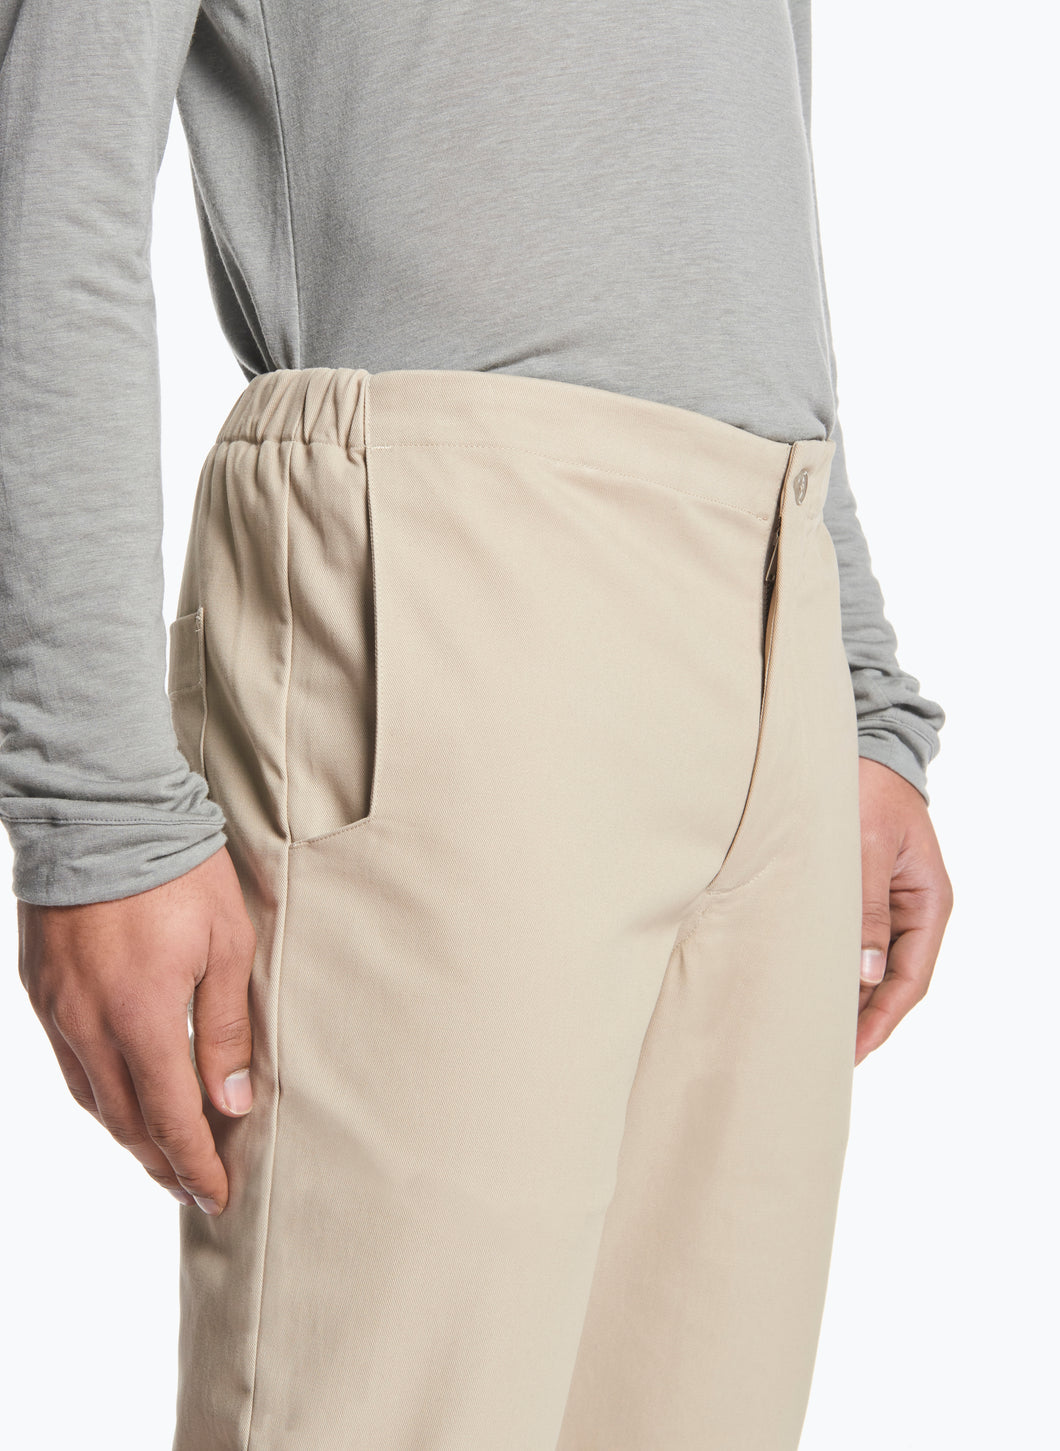 Pants with Notched Pockets in Beige Gabardine